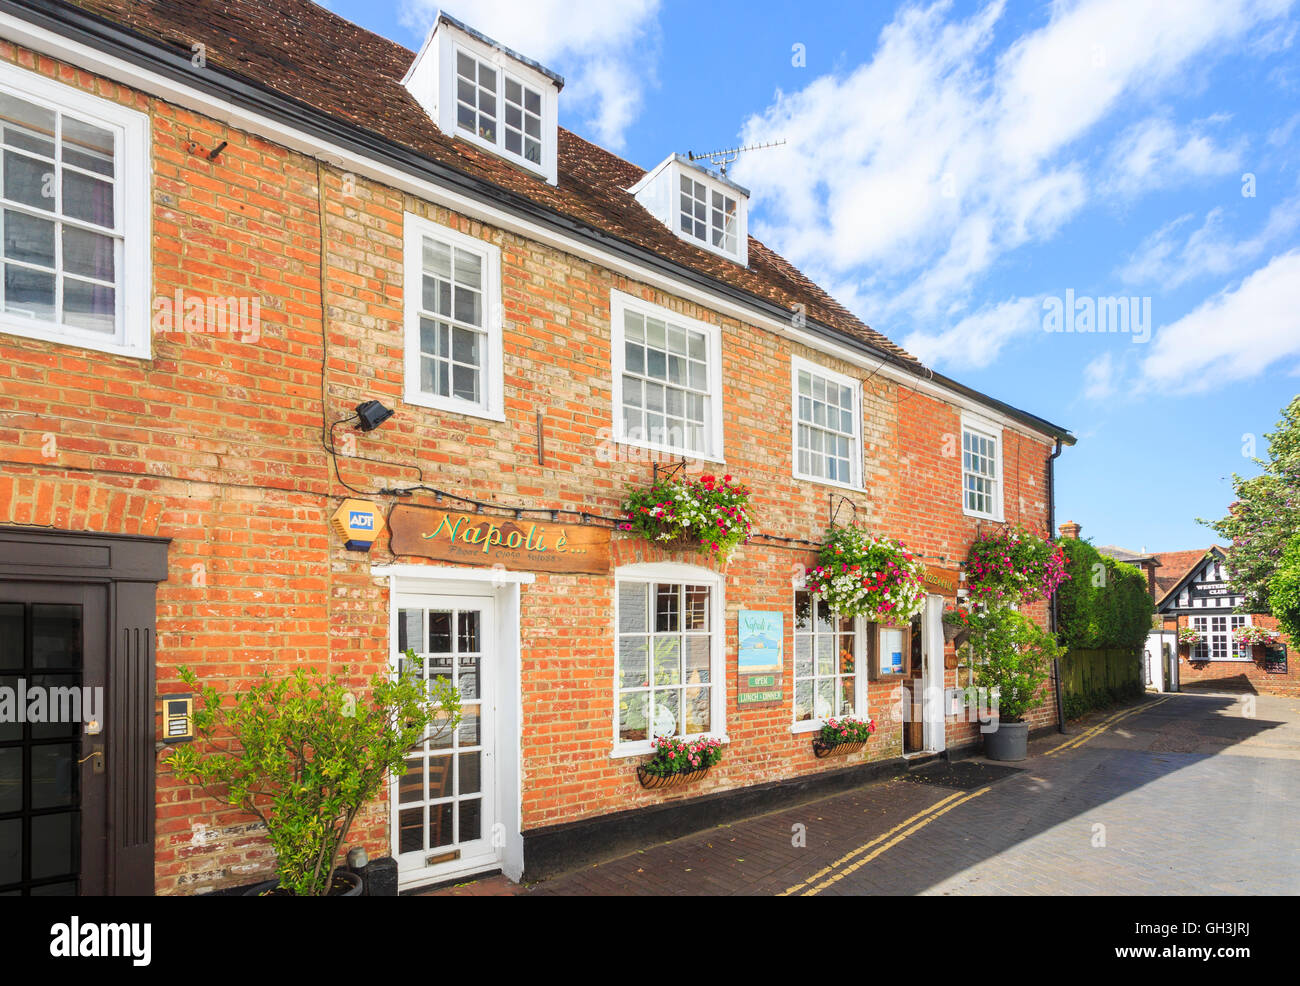 Typical red brick buildings and restaurant in Westerham, a town in the Sevenoaks District, Kent, on a sunny day - Stock Image